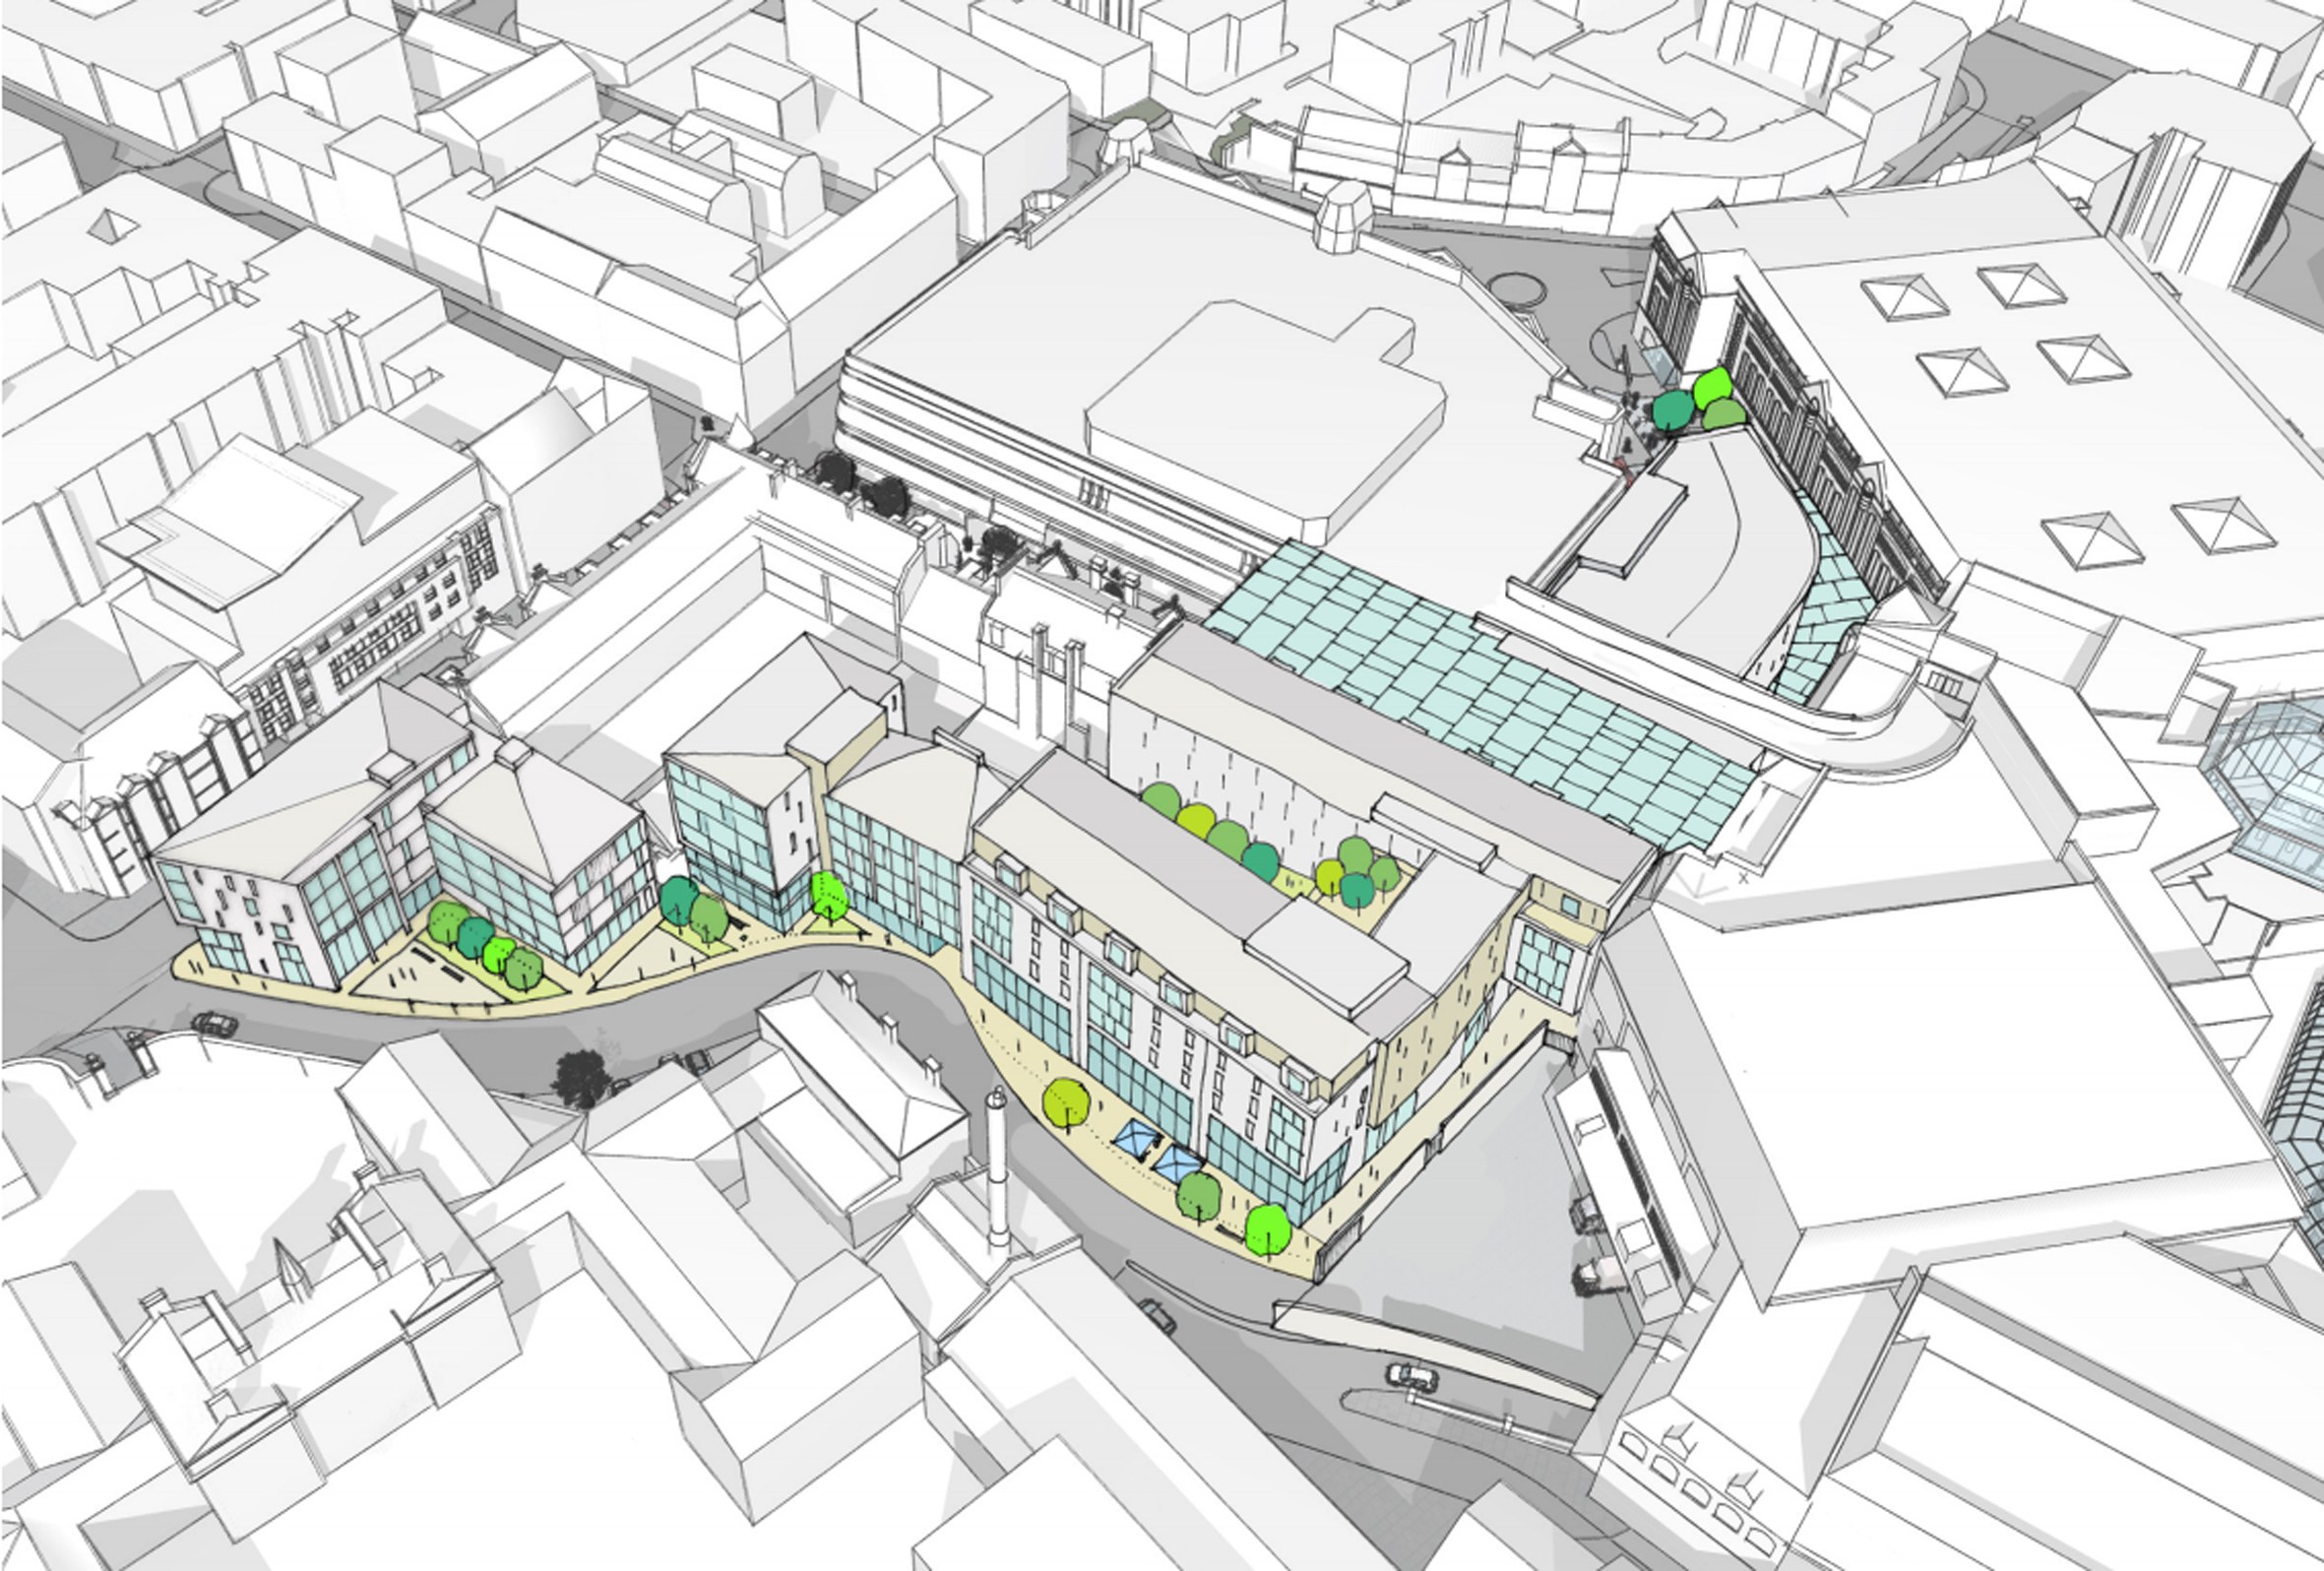 A new artist's impression of plans for the Bon Accord Centre. picture courtesy of Allan Murray, of Allan Murray Associates